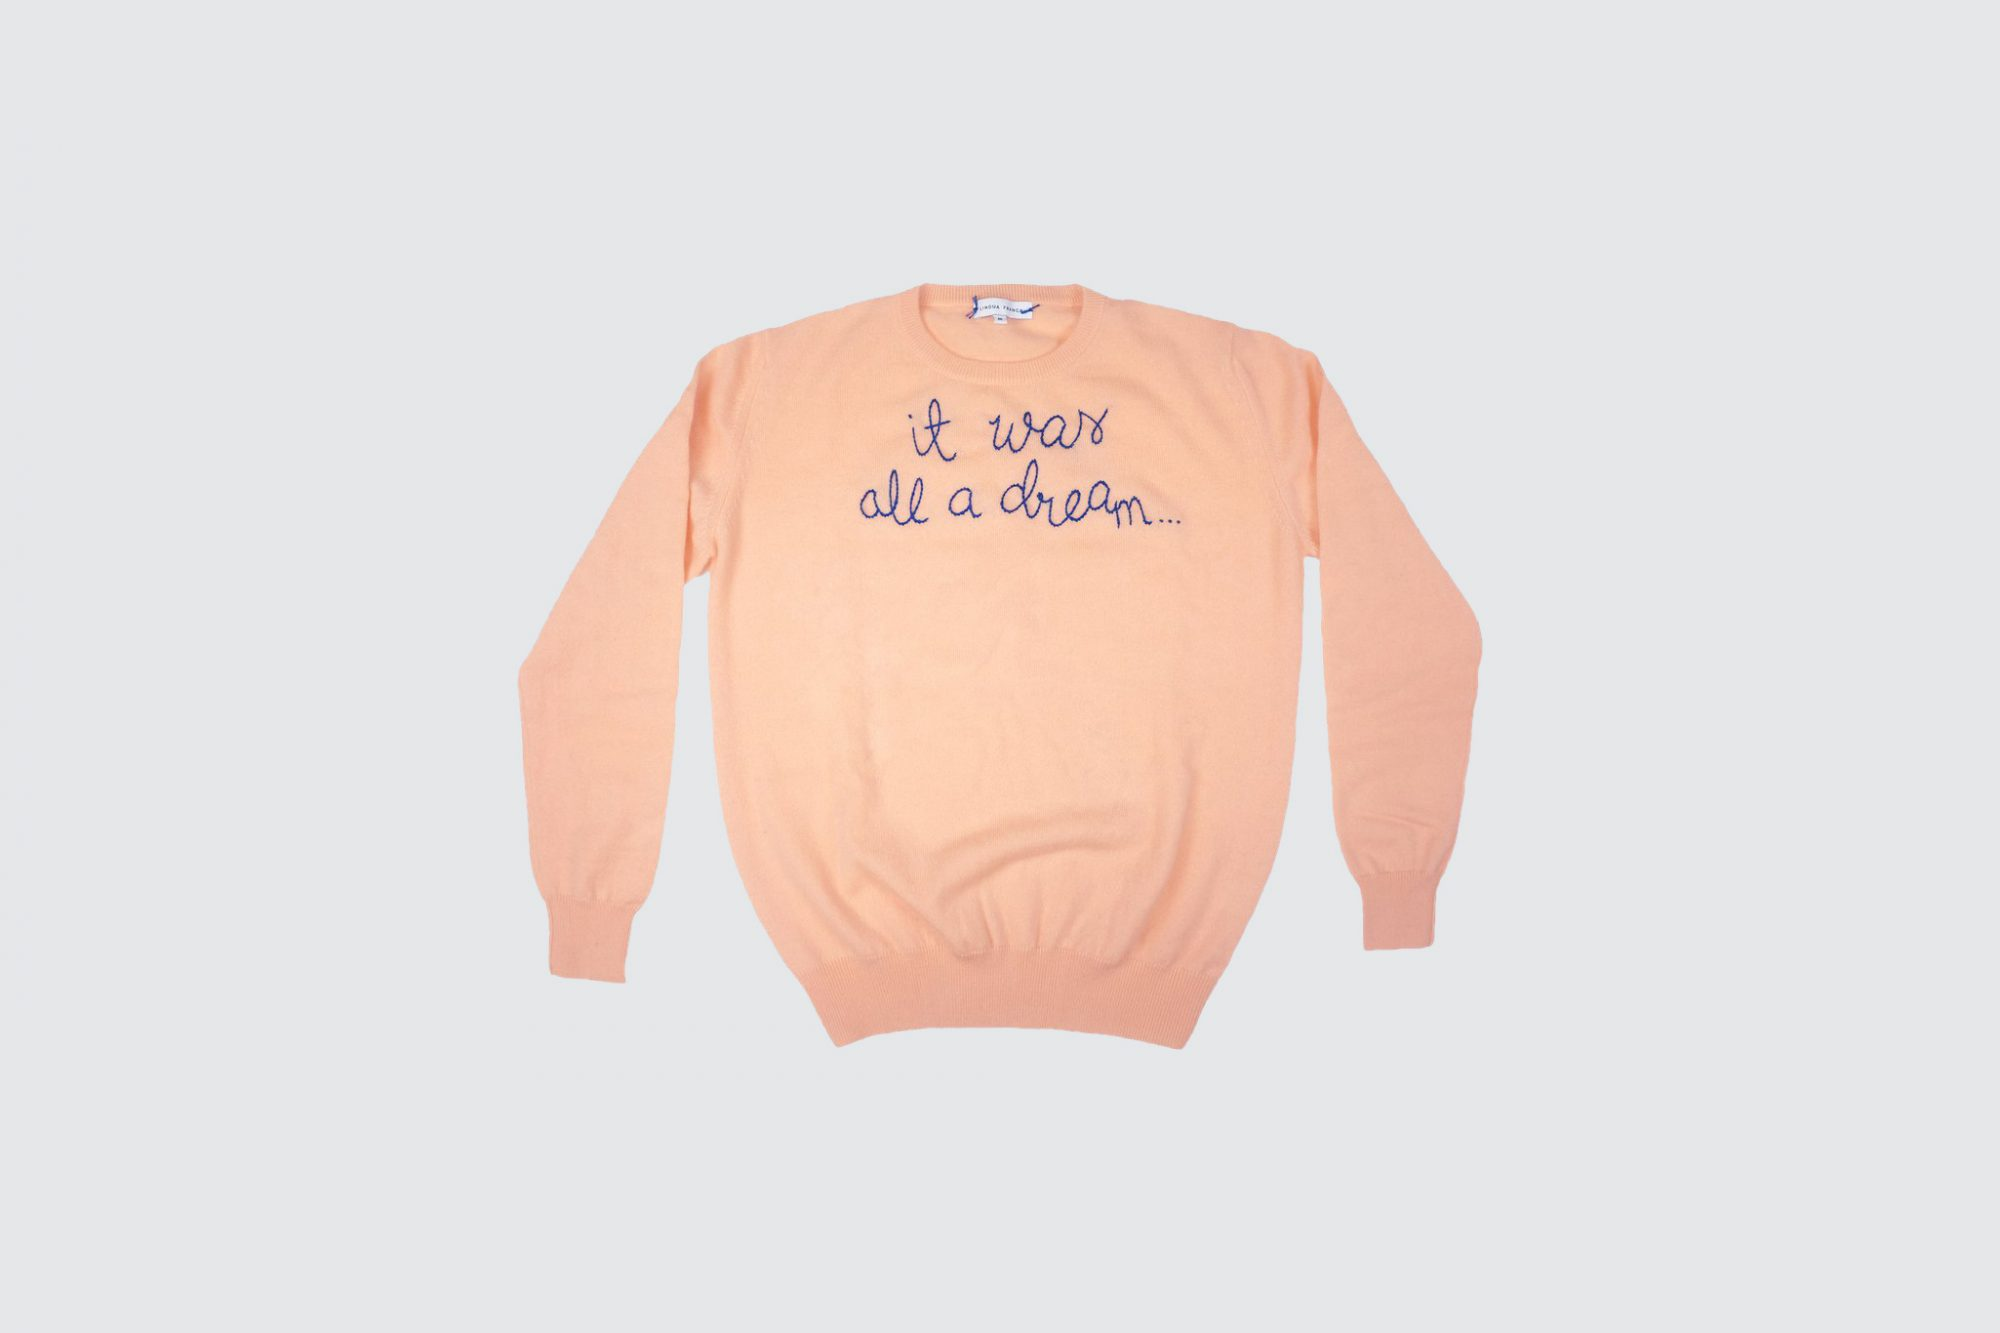 it was all a dream sweater gift